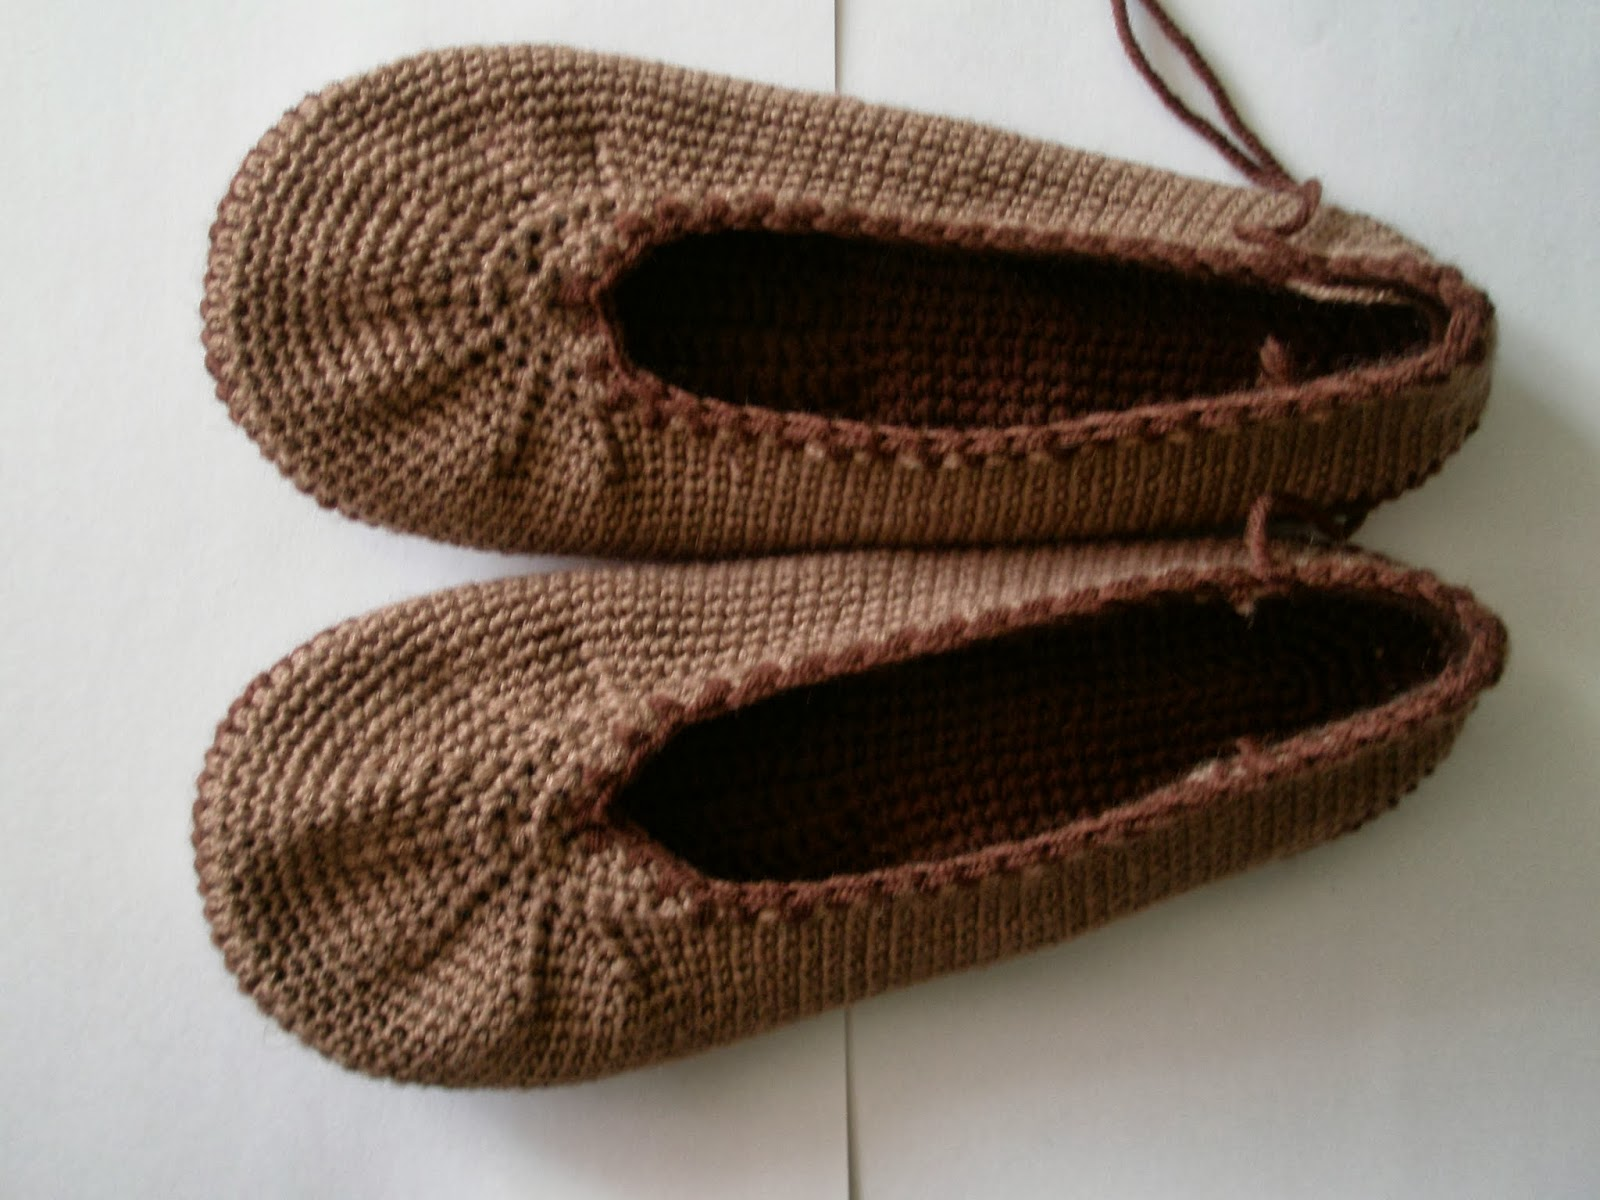 Crochet Yarn Store : beautiful sneaker made of crocheted yarn. step by step - FREE ...